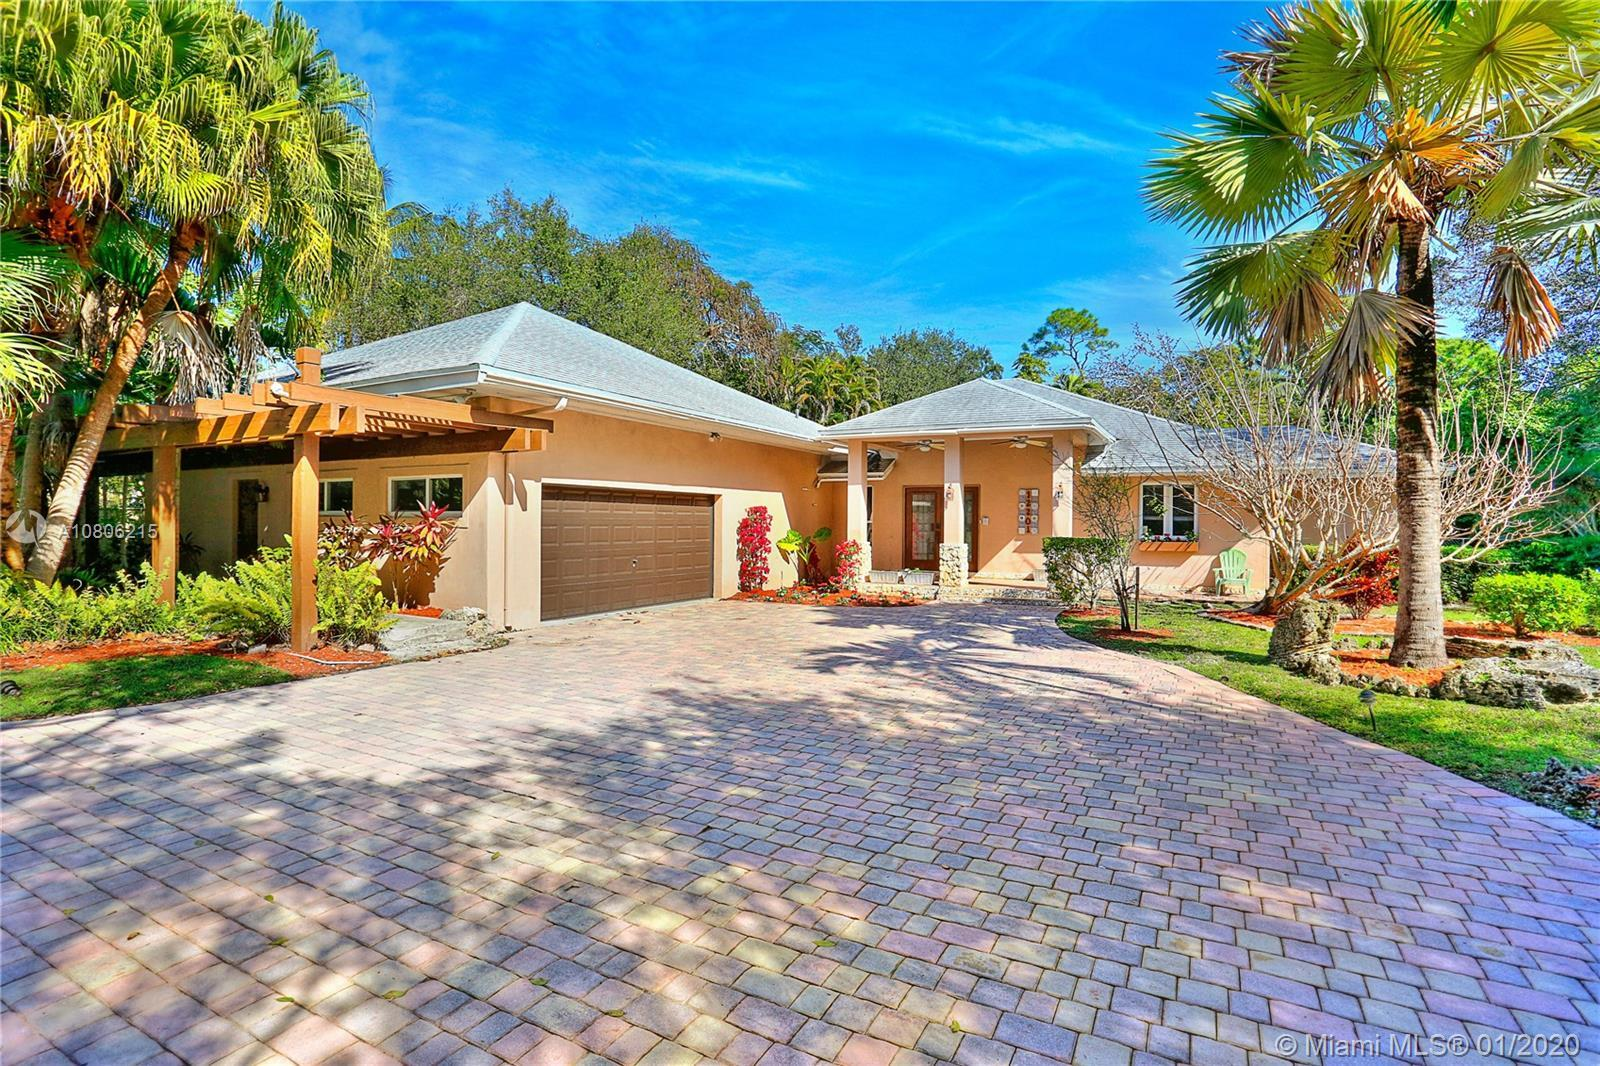 Located on a picturesque tree-lined Pinecrest street, this beautiful and light-filled 4 bed / 4.5 ba